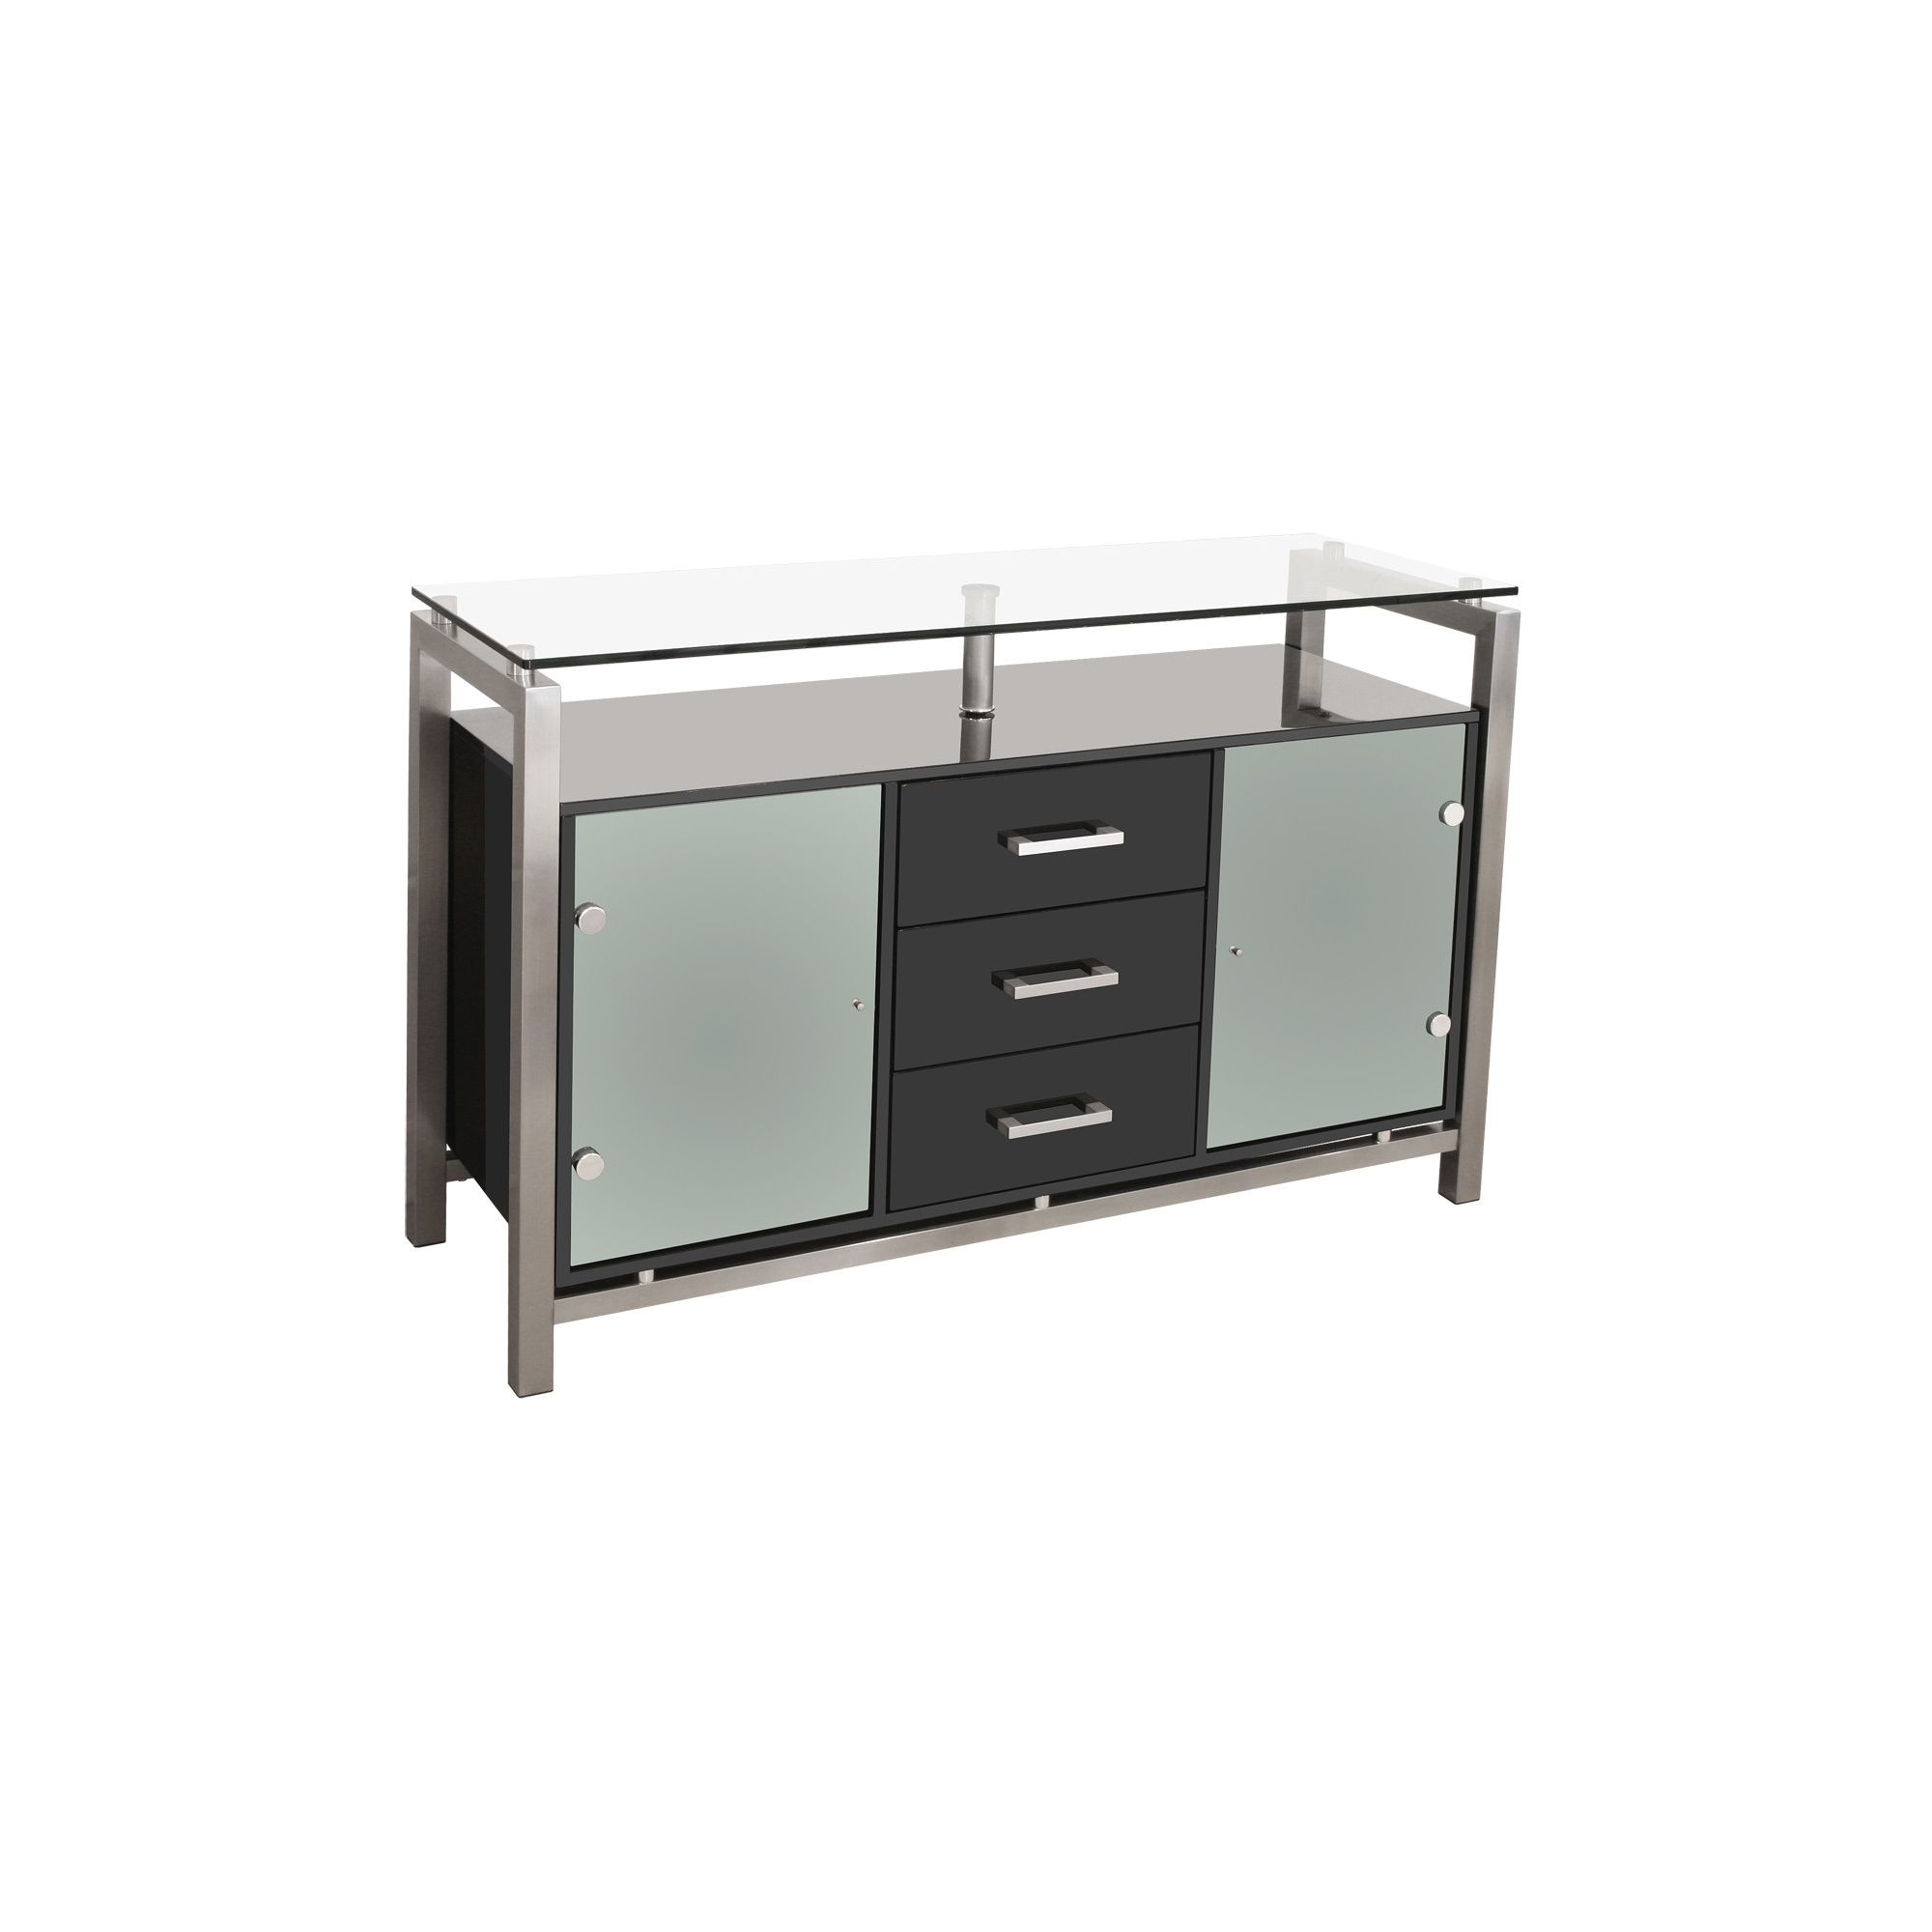 Home Essence 3 Drawer Display Cabinet - Black at Tesco Direct